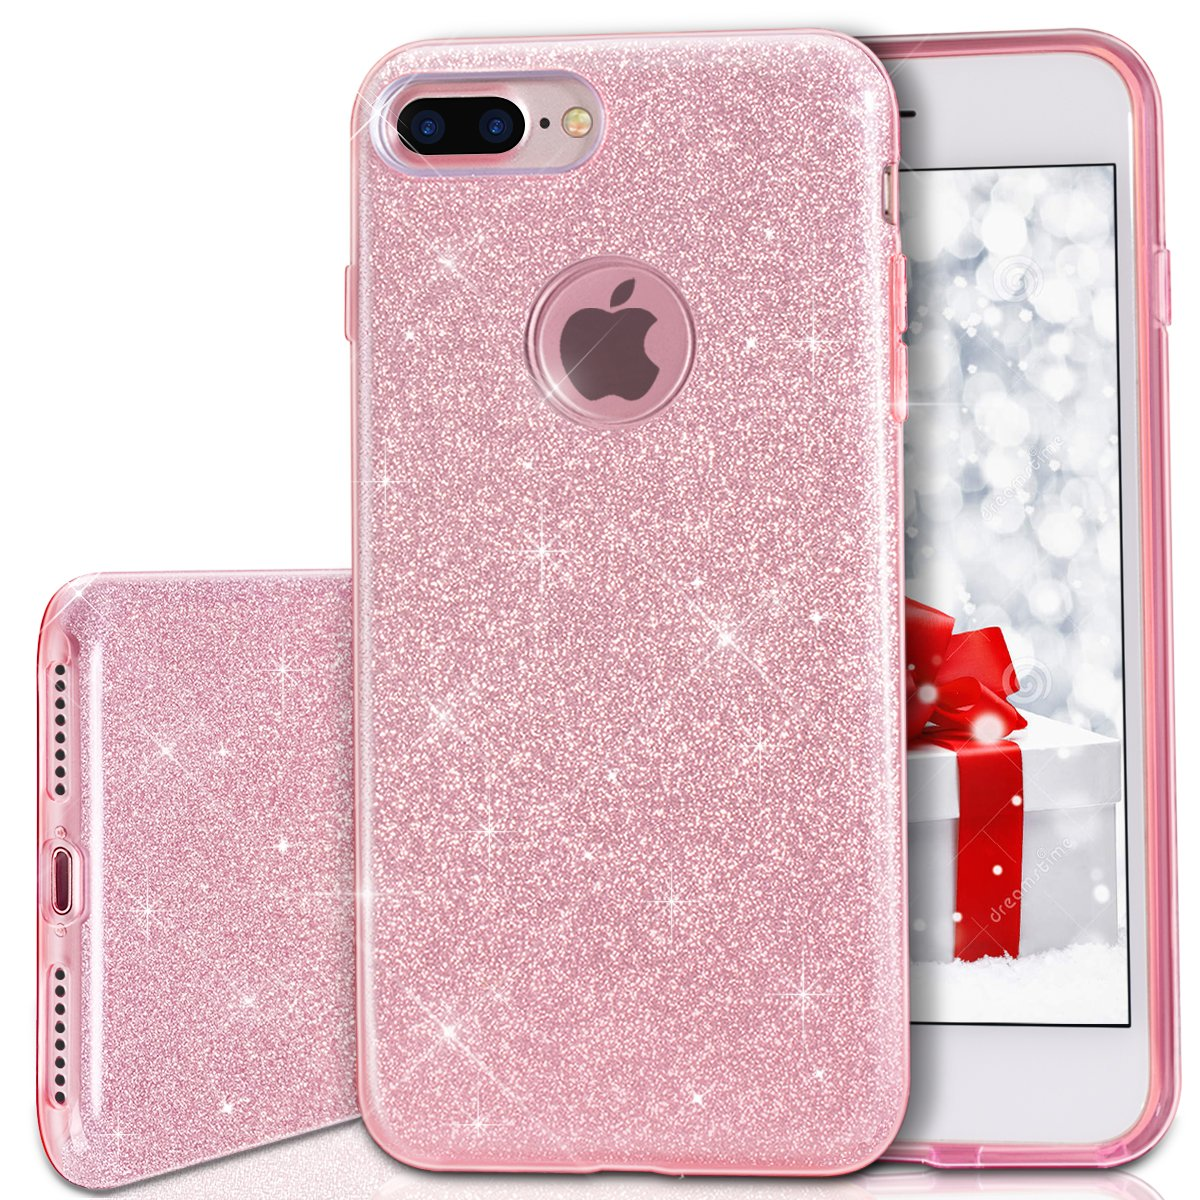 iPhone 7 plus Case, MILPROX Bling Luxury Glitter Pretty Cute Premium 3 Layer Hybrid Anti-Slick / Protective / Soft Slim Thin TPU unique Case for girls / women iPhone 7 plus - Pink [rose gold]